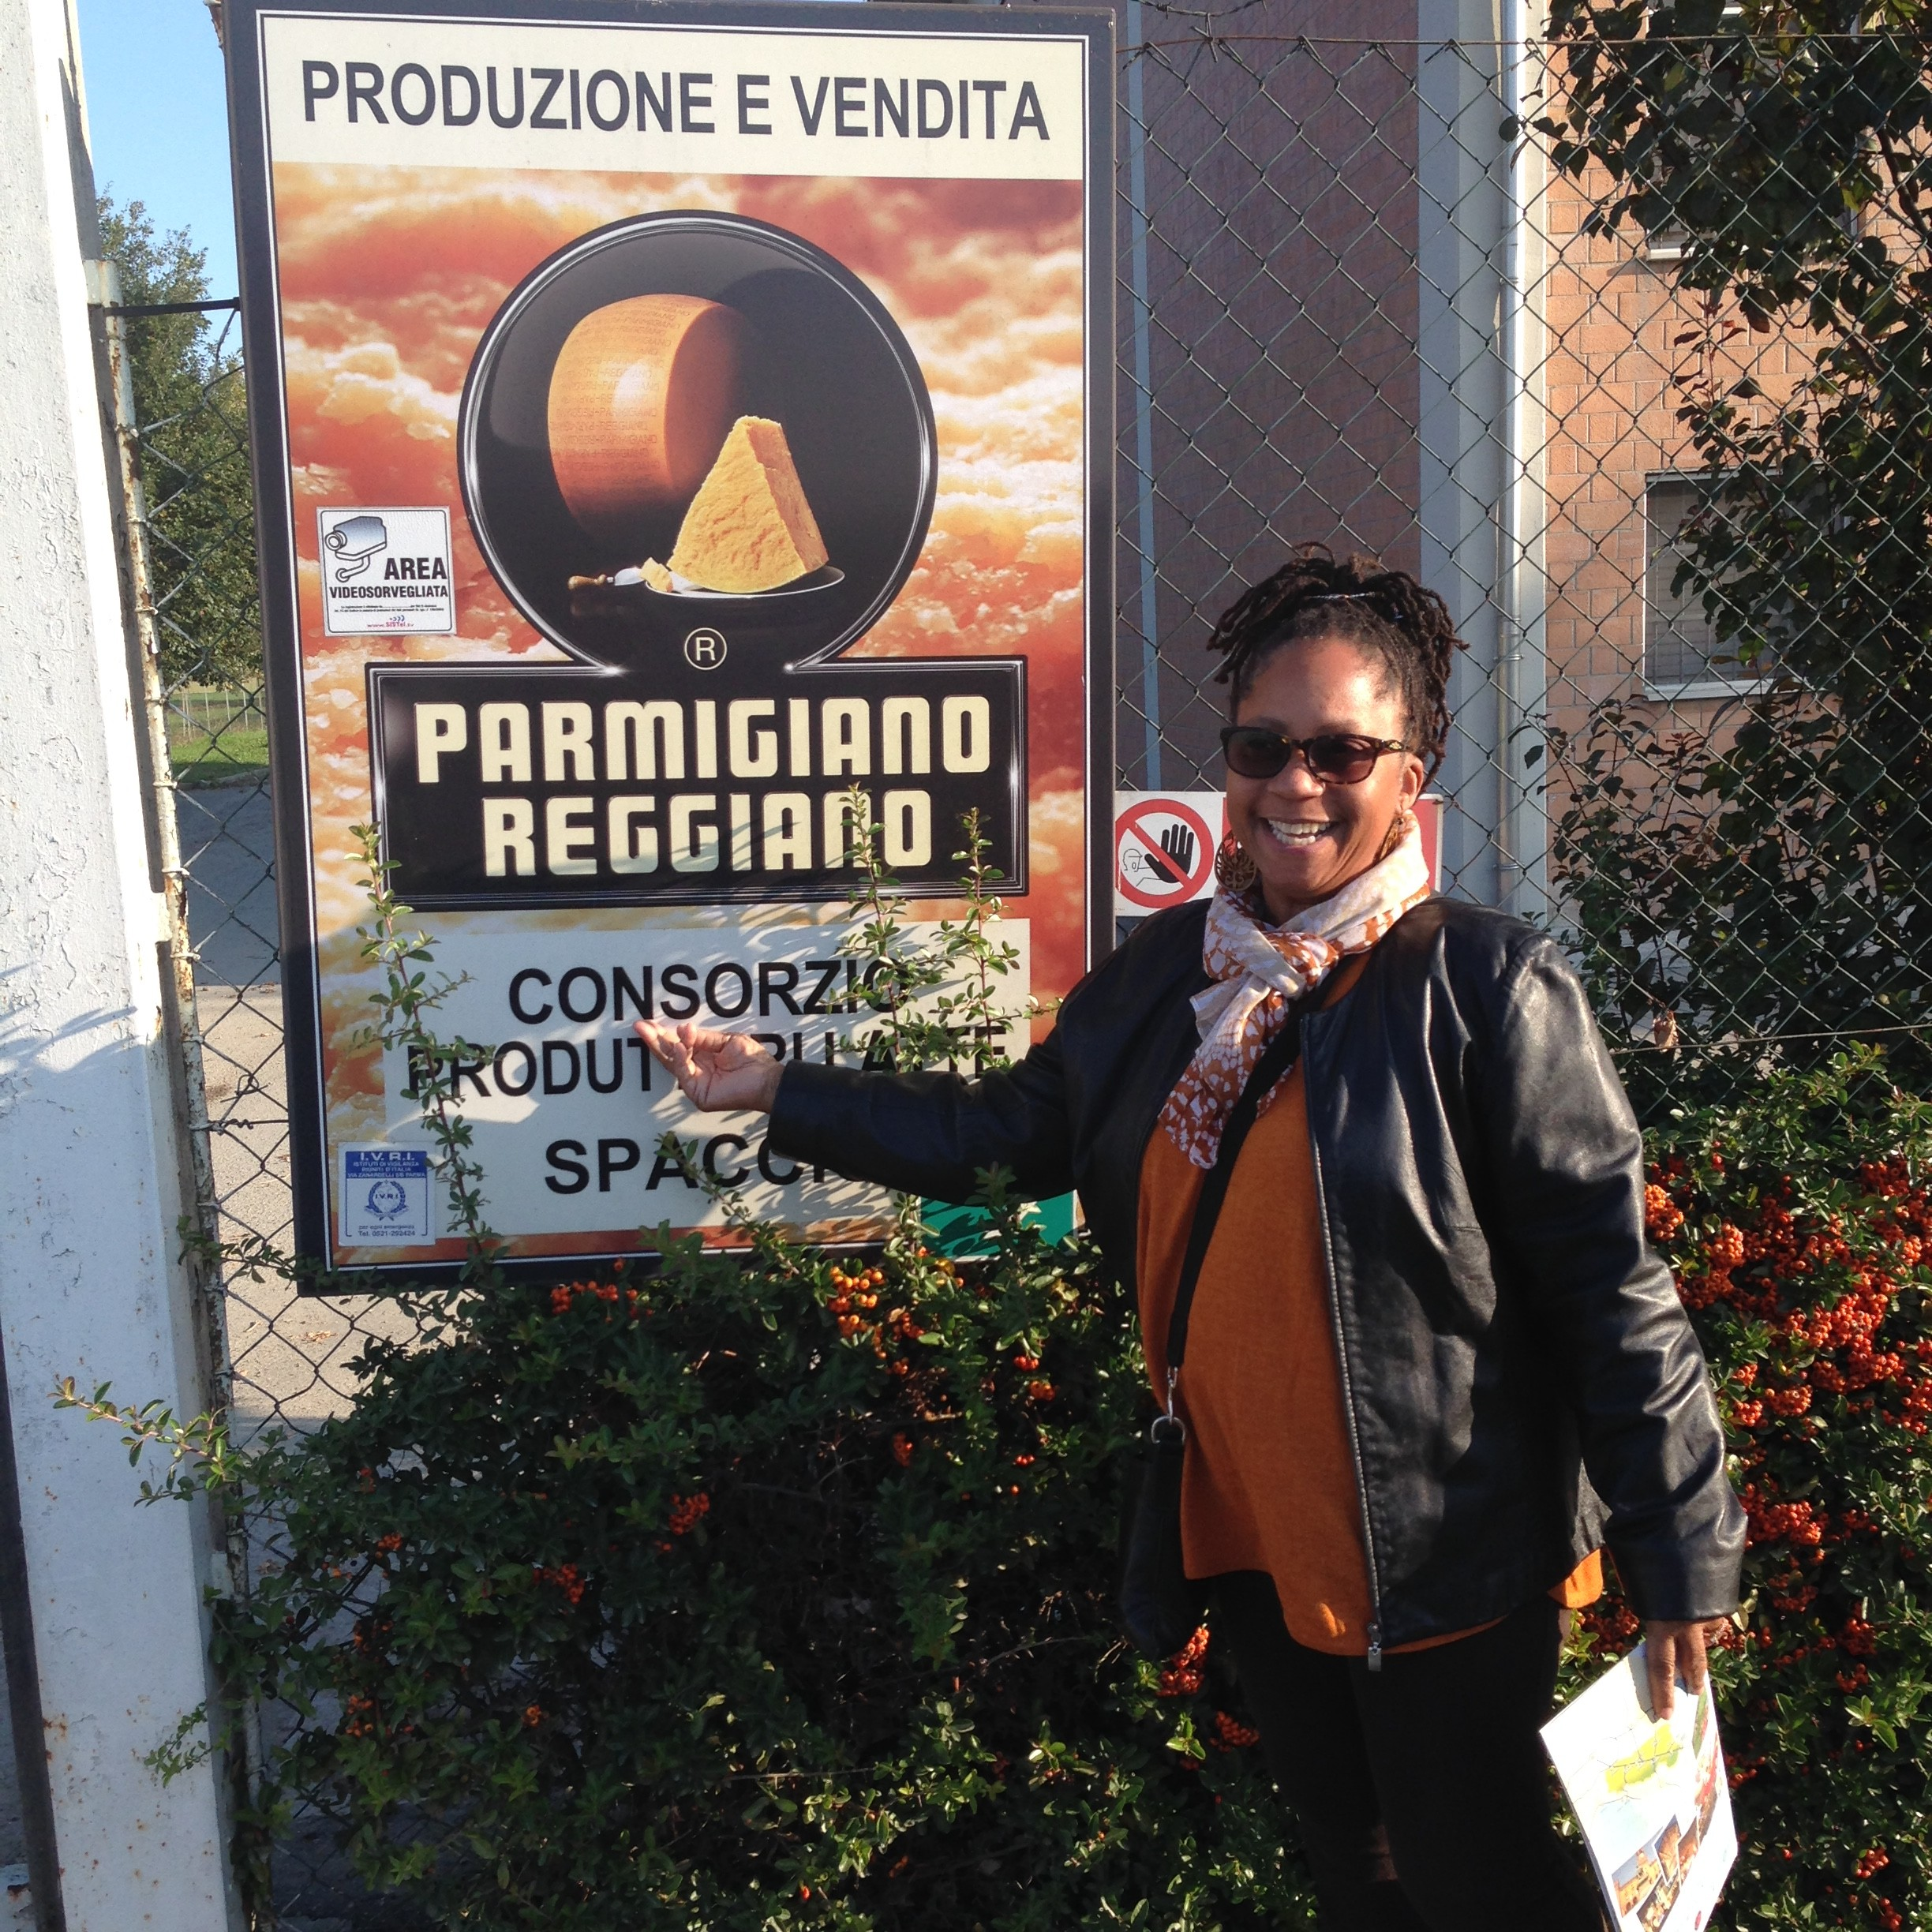 Tour at Parmigiano Reggiano